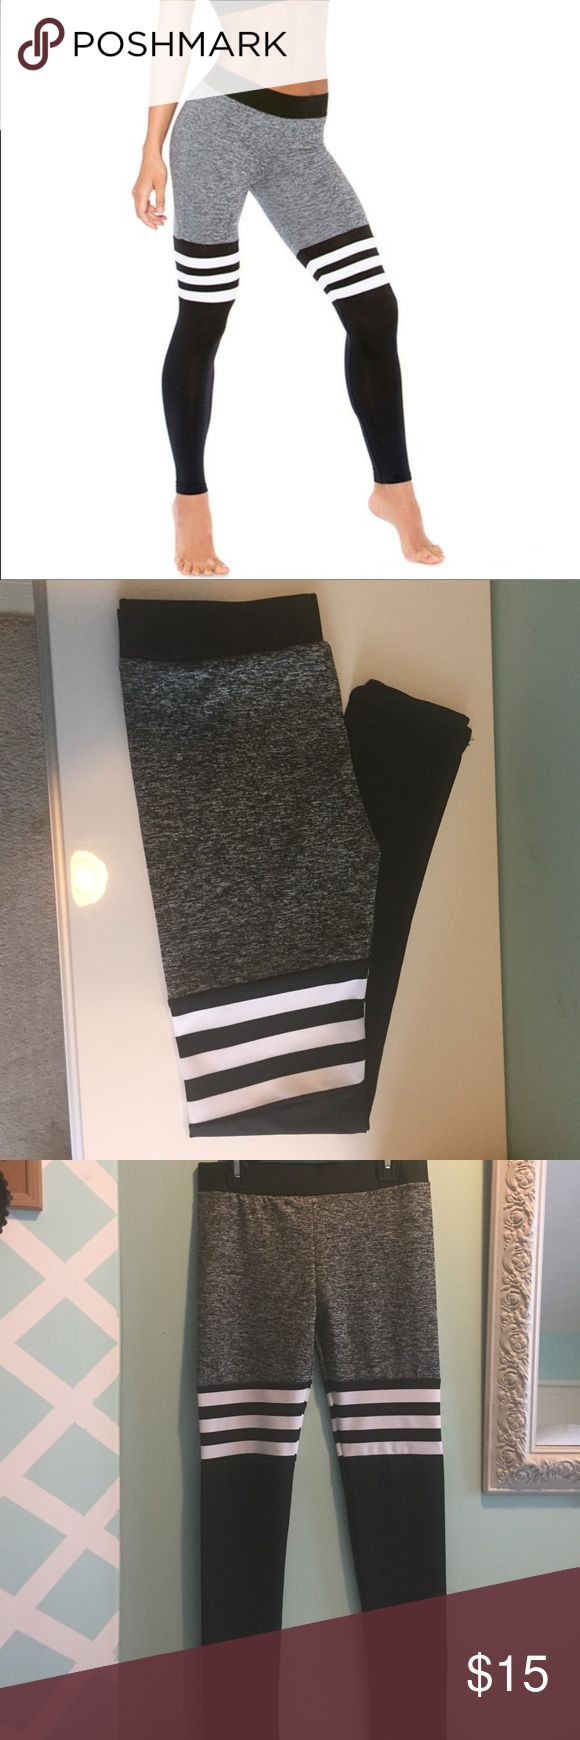 🔥 Fashionable gym leggings 🔥 Made of Polyester and Spandex material.                   The material is semi transparent. Pants Leggings